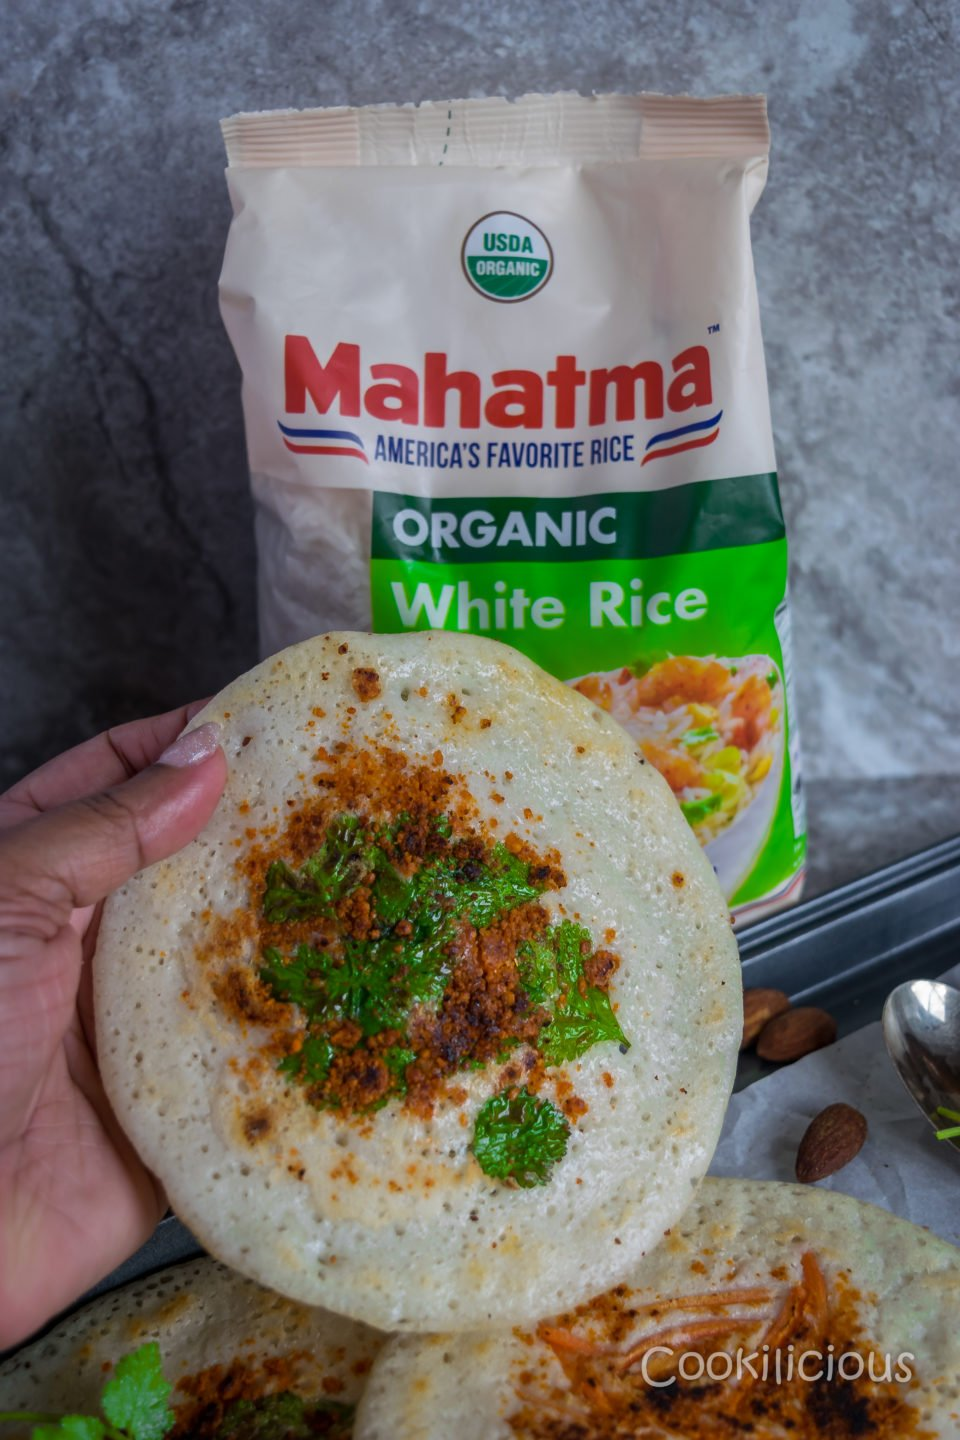 A hand holding an uttapam made from dosa batter with Mahatma Organic white rice bag in the background